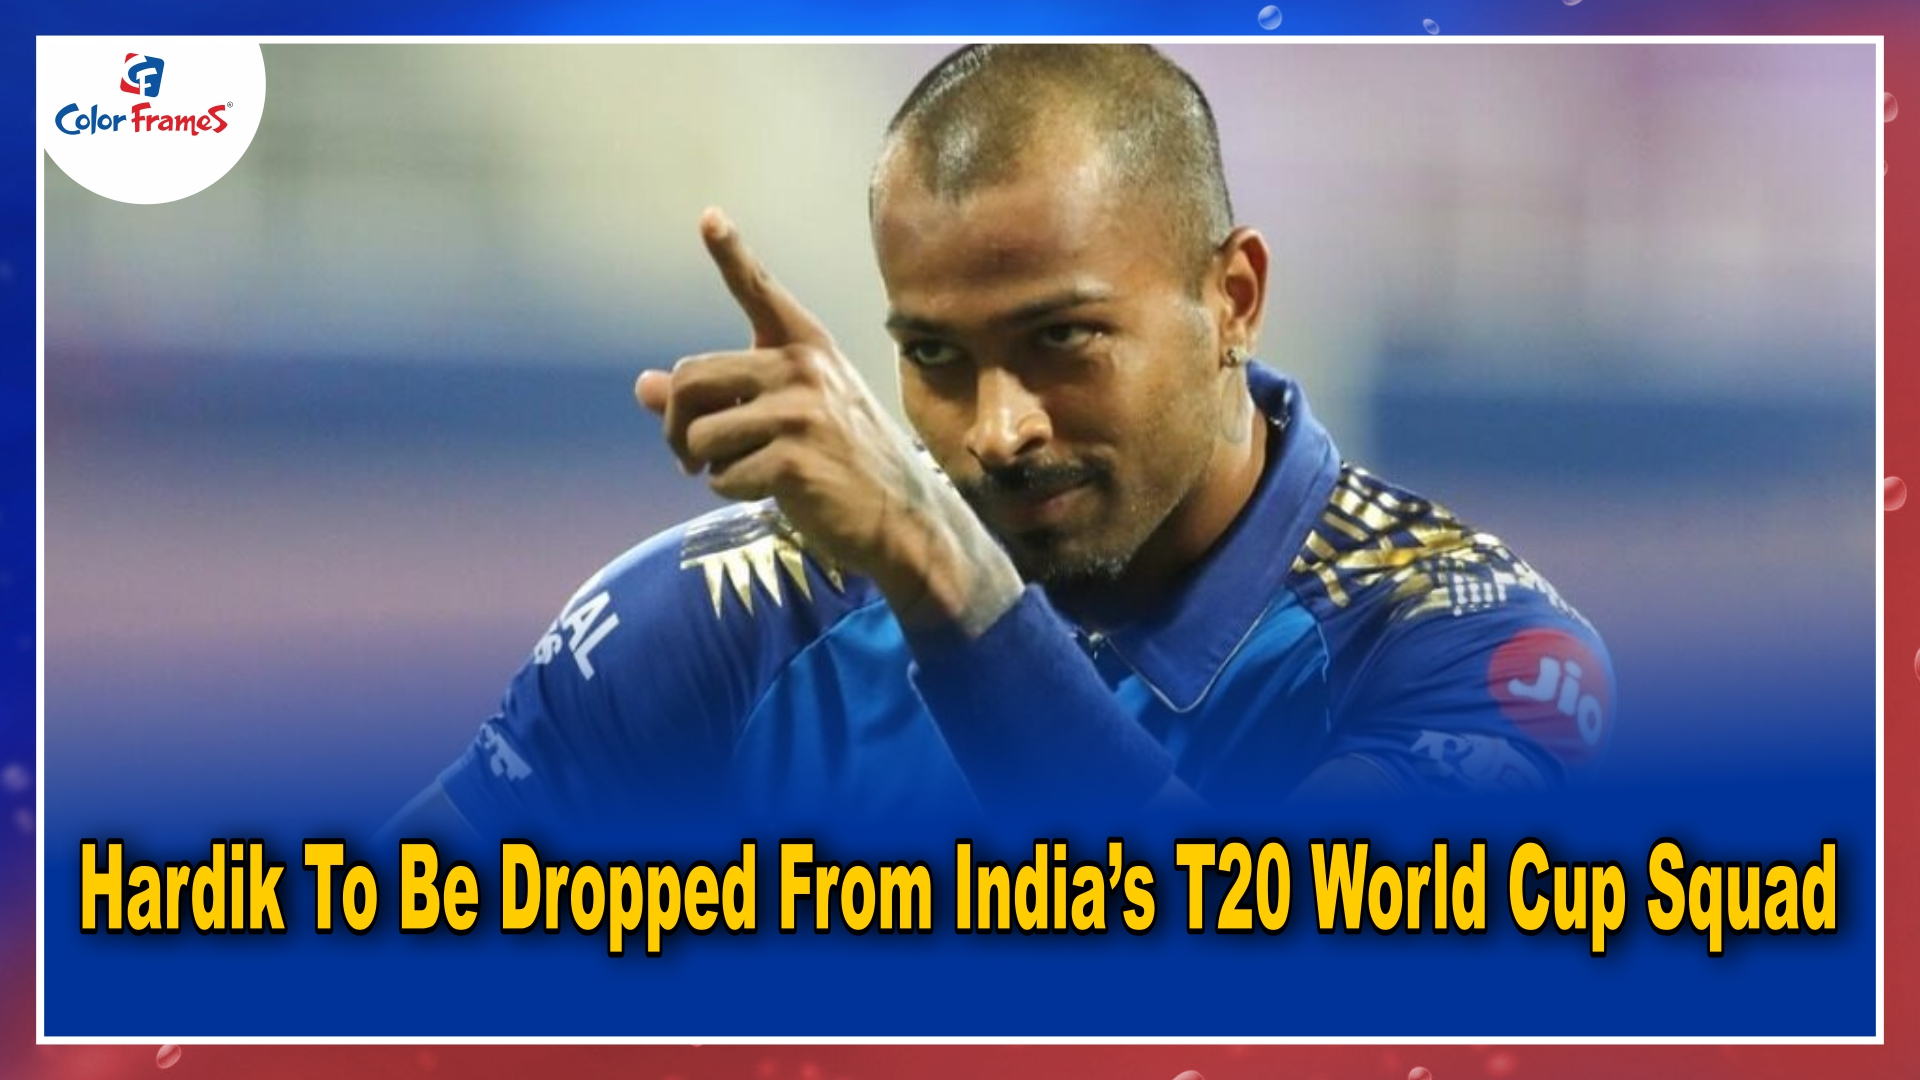 Hardik To Be Dropped From India's T20 World Cup Squad